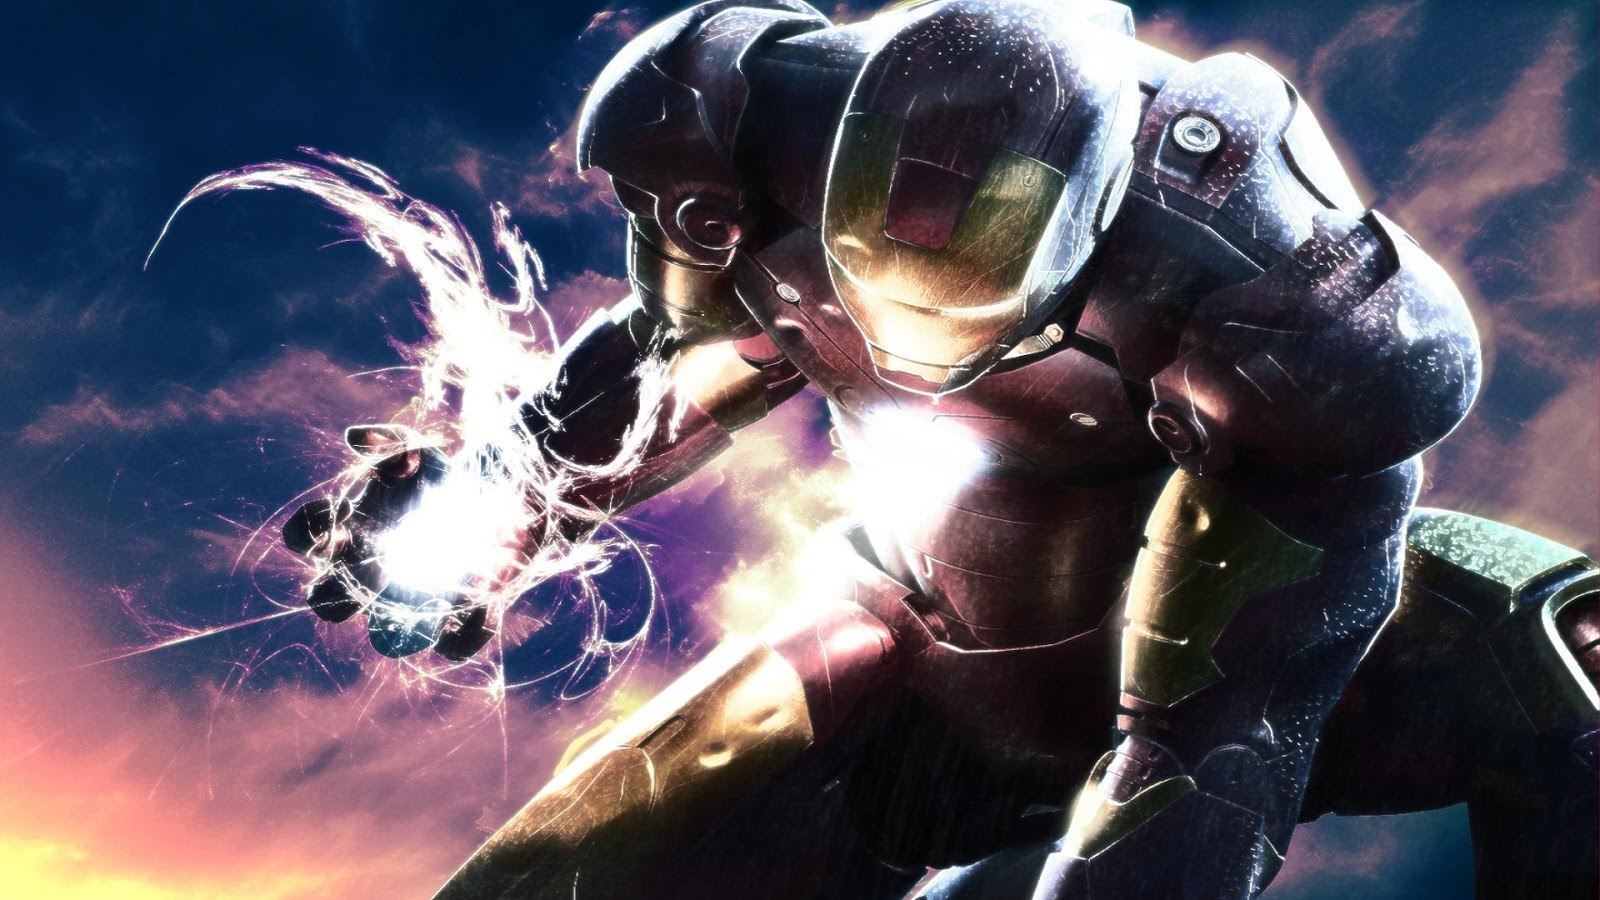 Free Iron Man HD Wallpapers